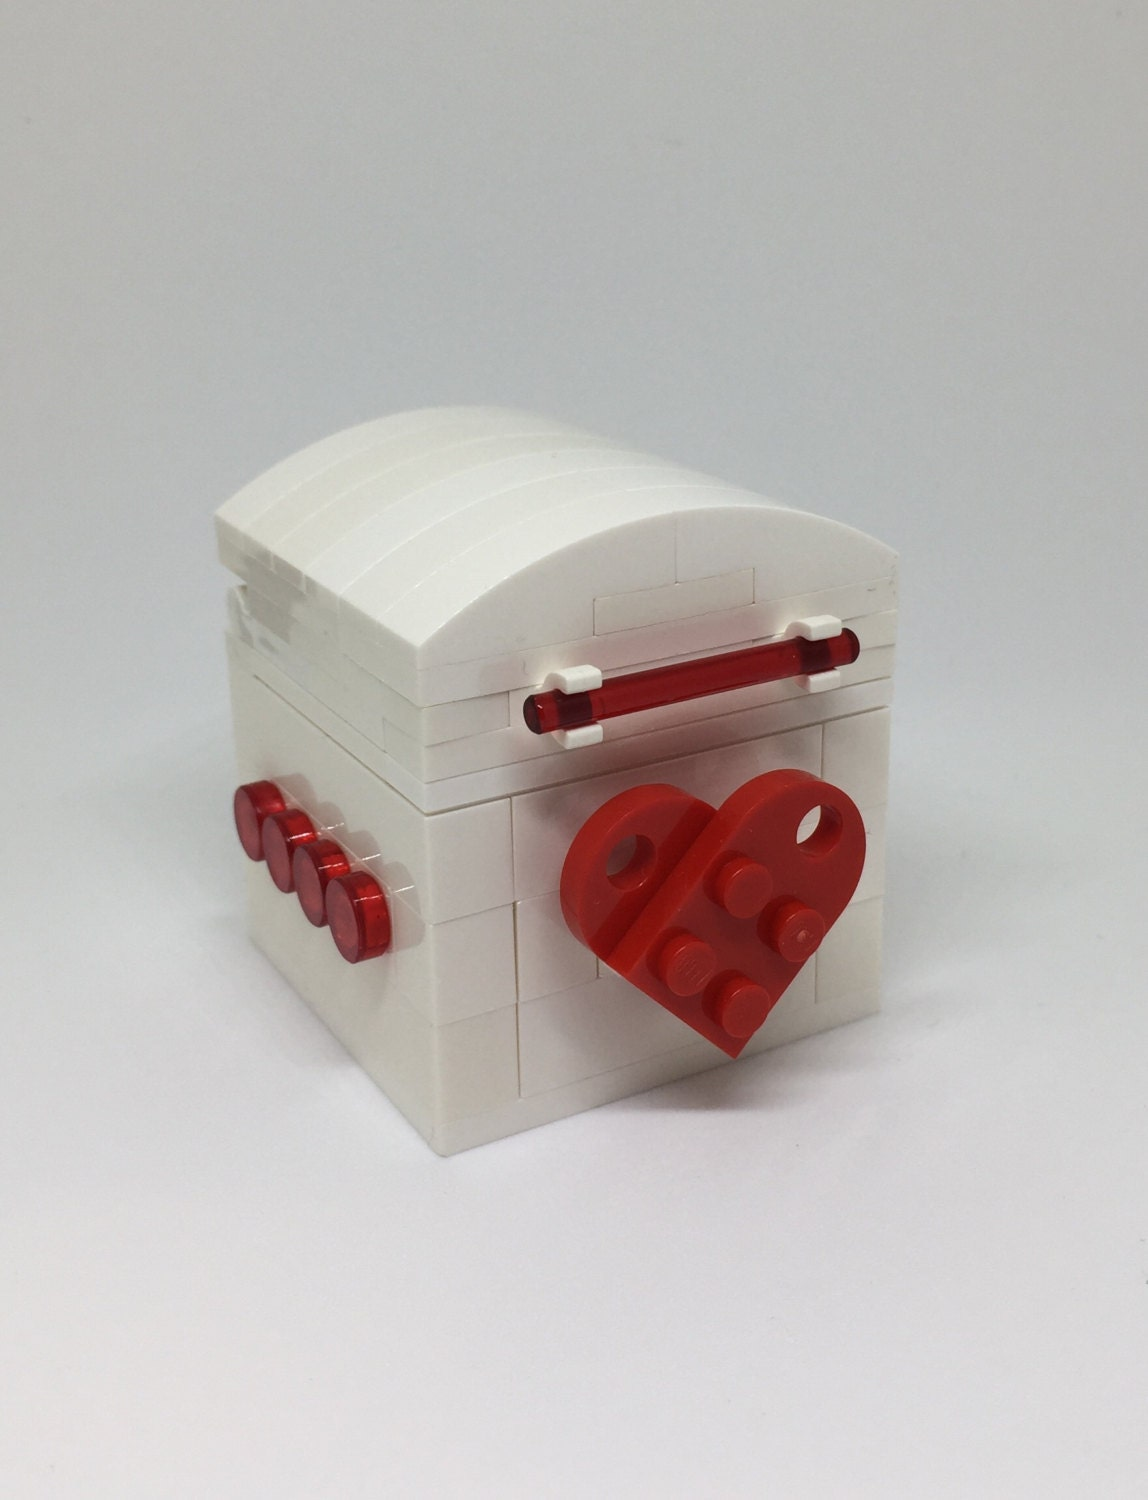 Lego wedding ring box wedding ring valentine ring engagement for Cute engagement ring boxes